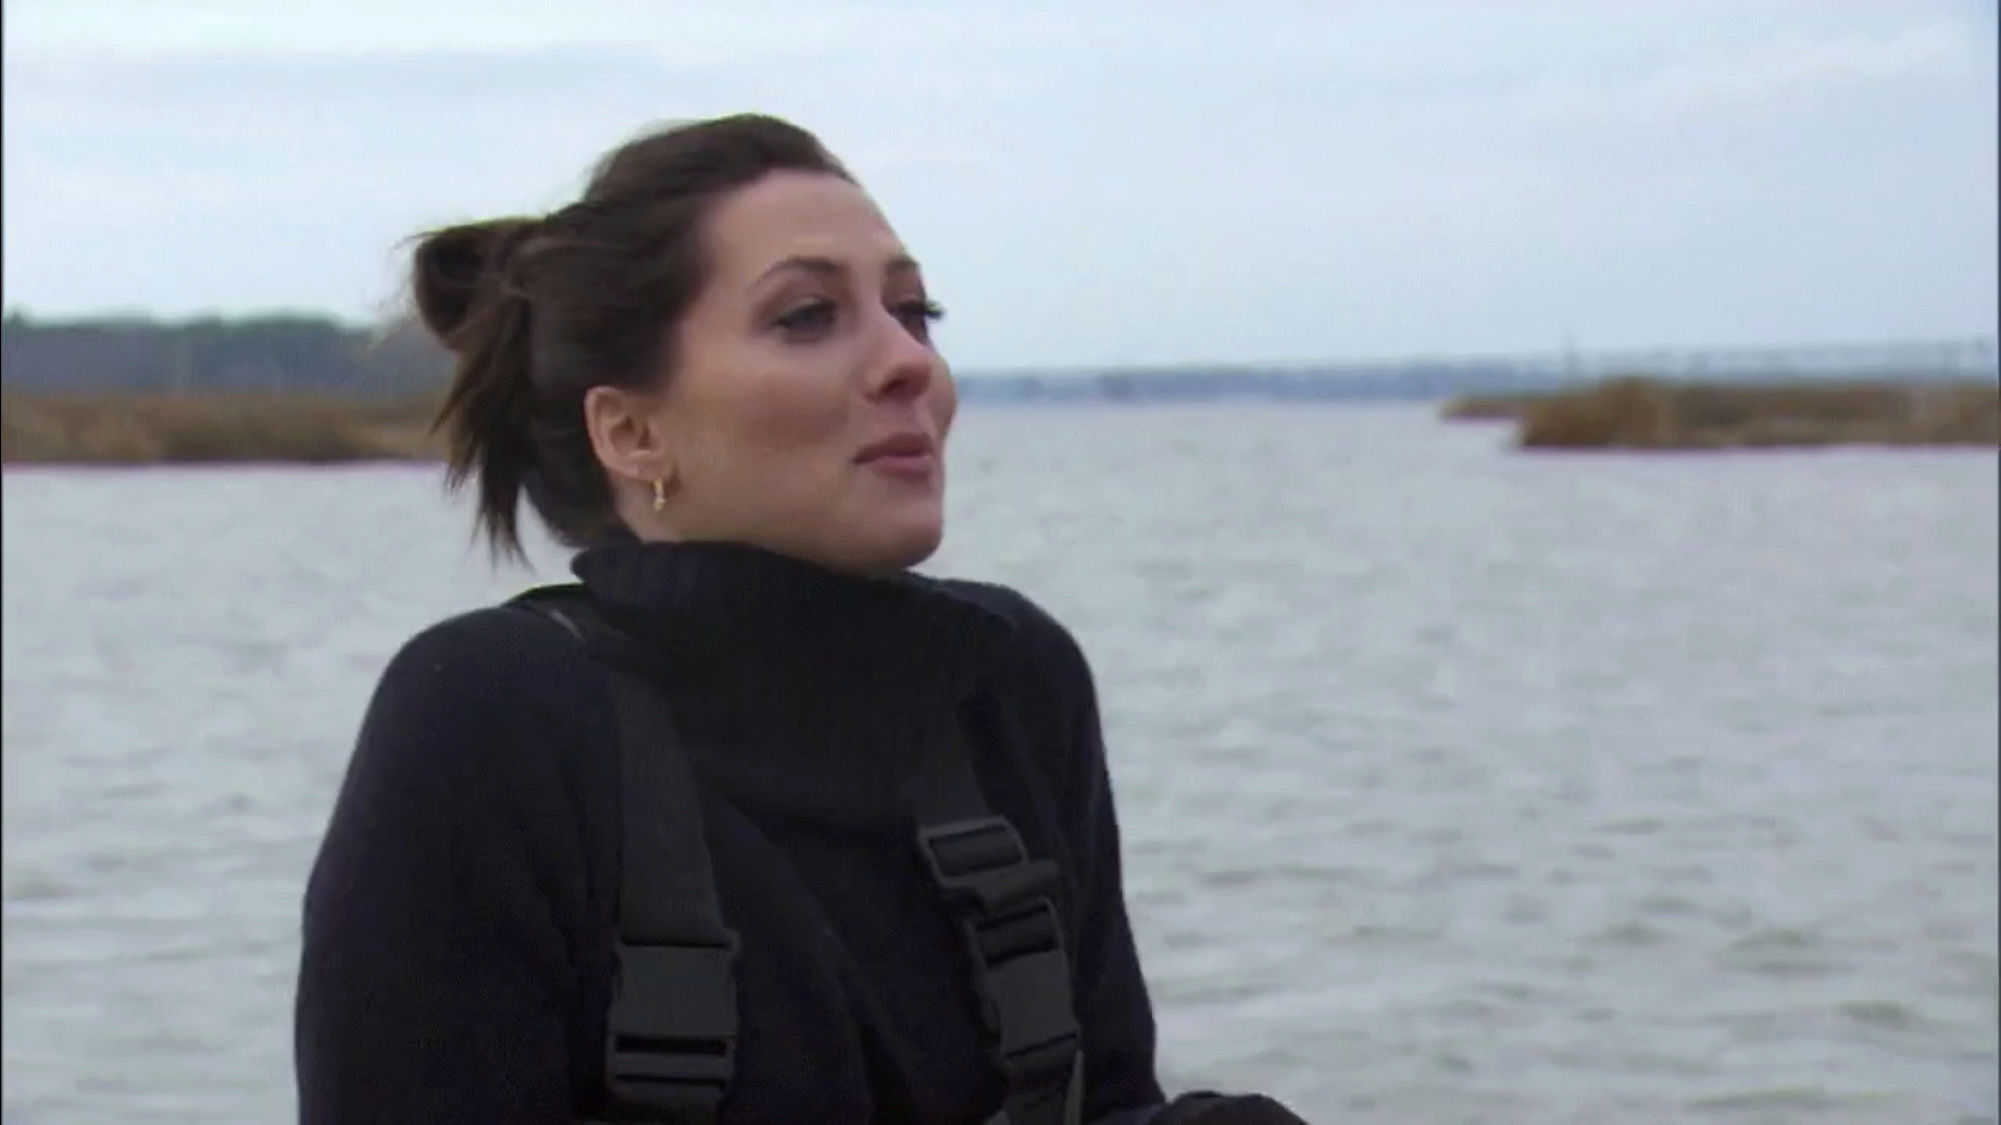 Bachelorette 14 - Becca Kufrin - ScreenCaps - NO Discussion - *Sleuthing Spoilers* 9fc82b10